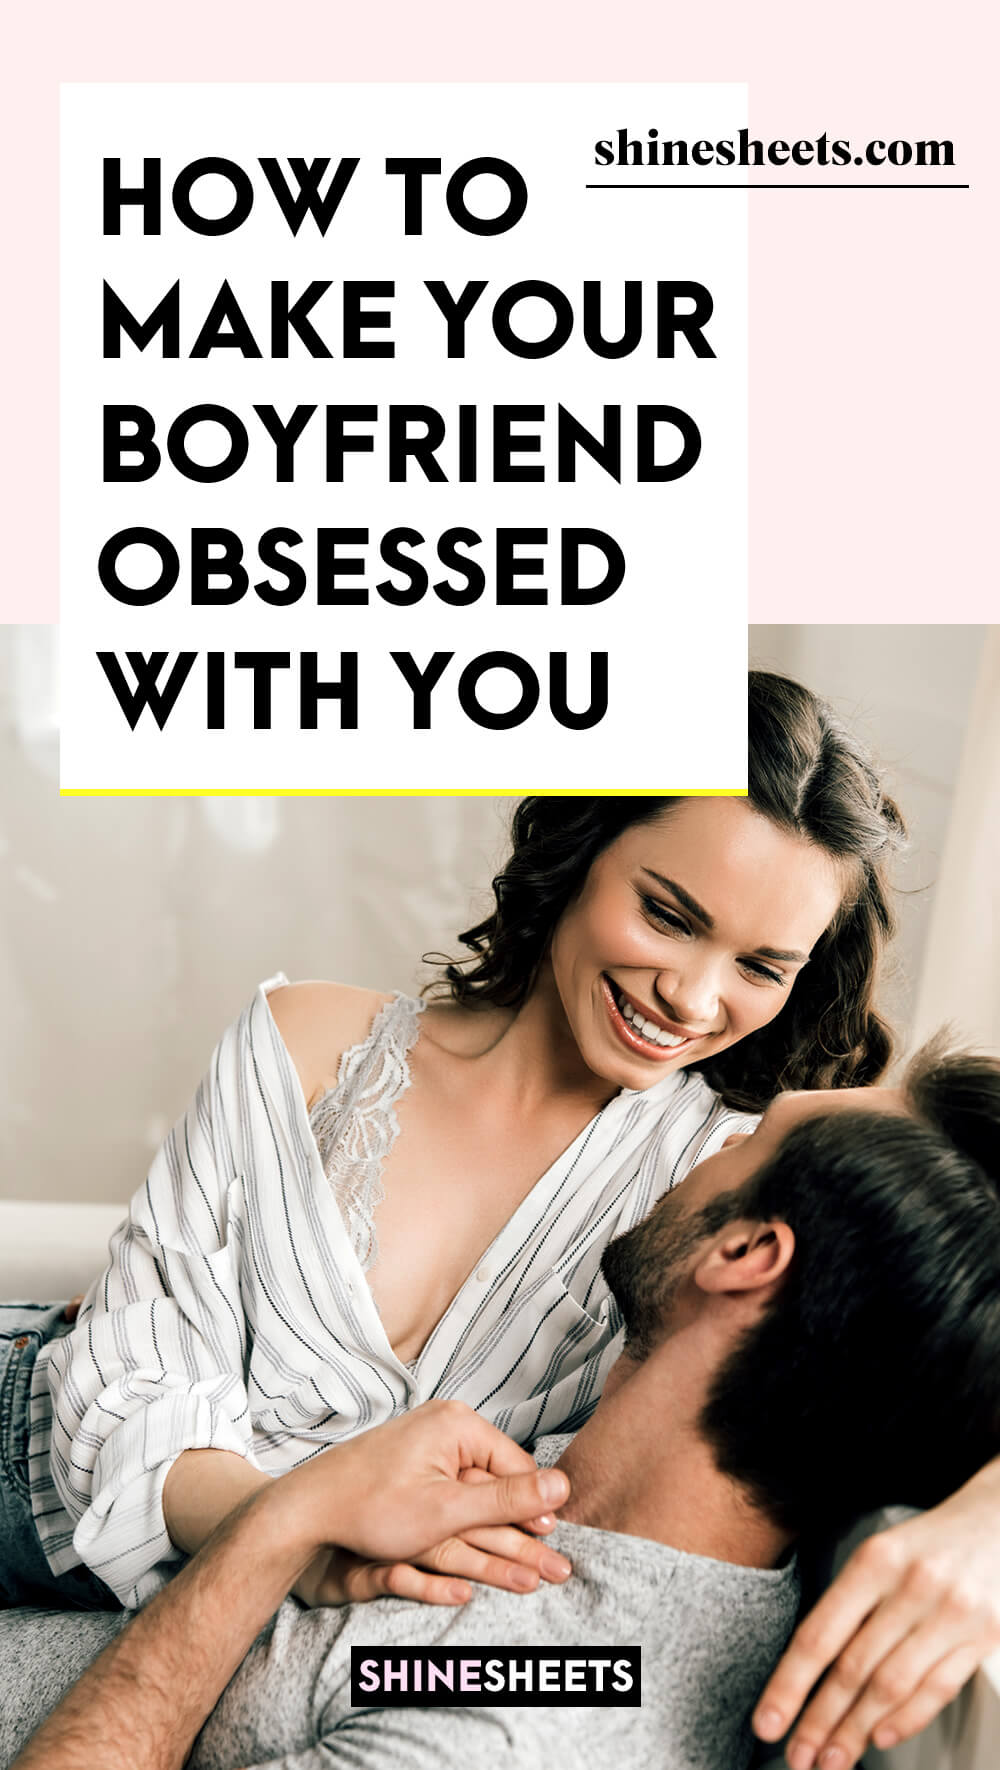 woman showing tricks how to make your boyfriend obsessed with you